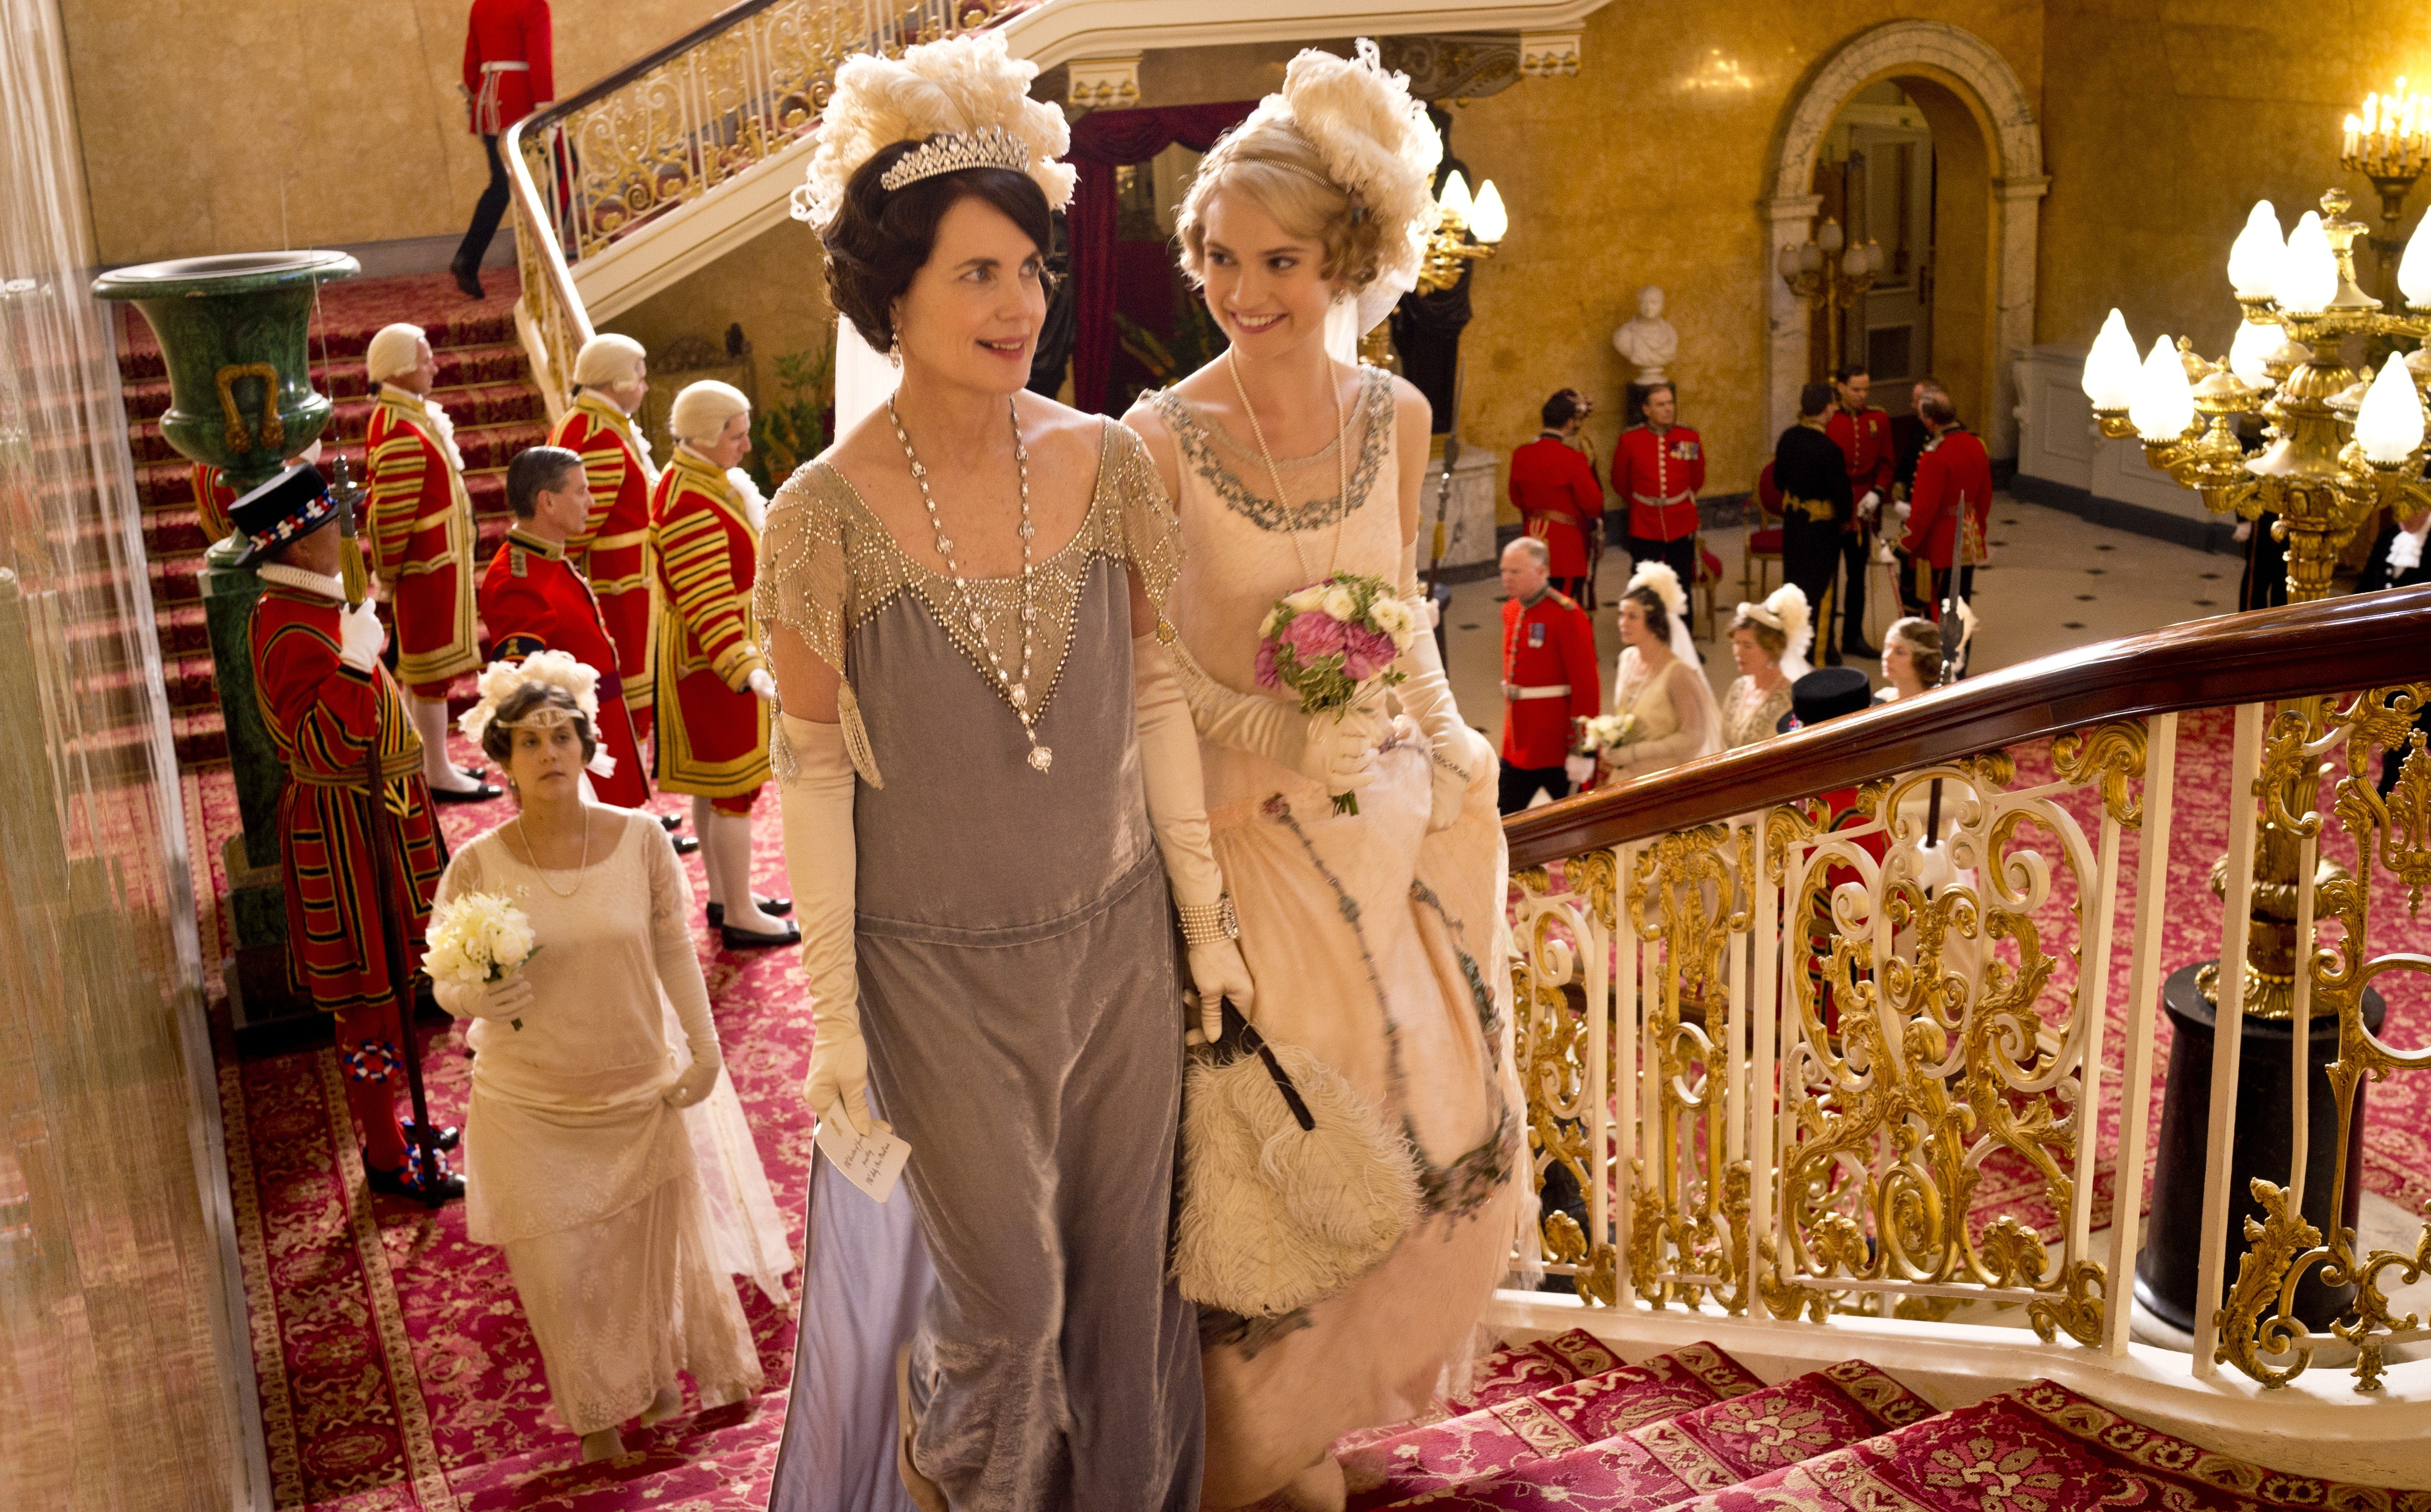 Downton Abbey Series 4 Christmas Special. Can't wait!!!